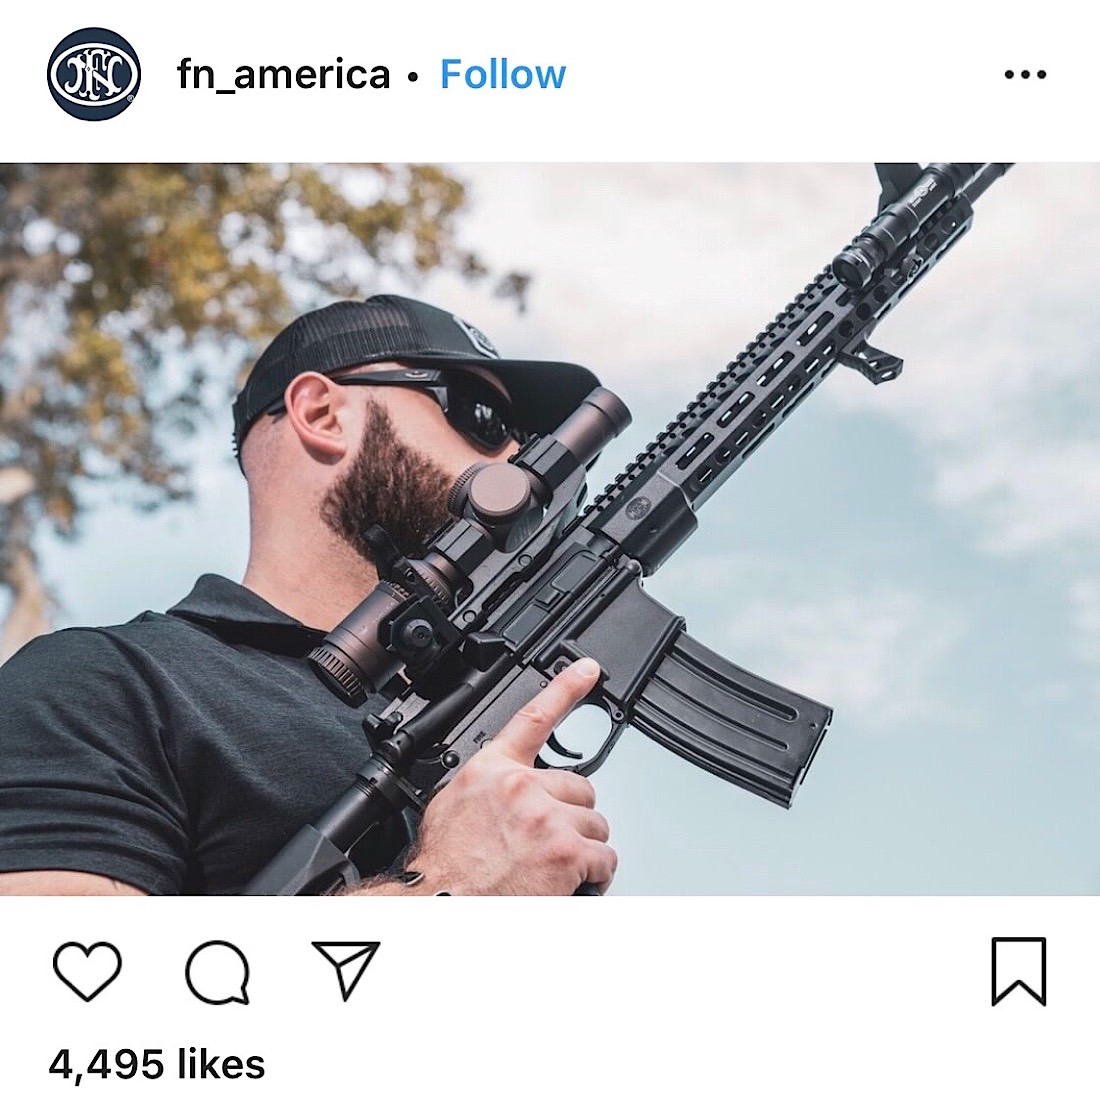 An Instagram post from firearms company FN America (Instagram - @fn_america)